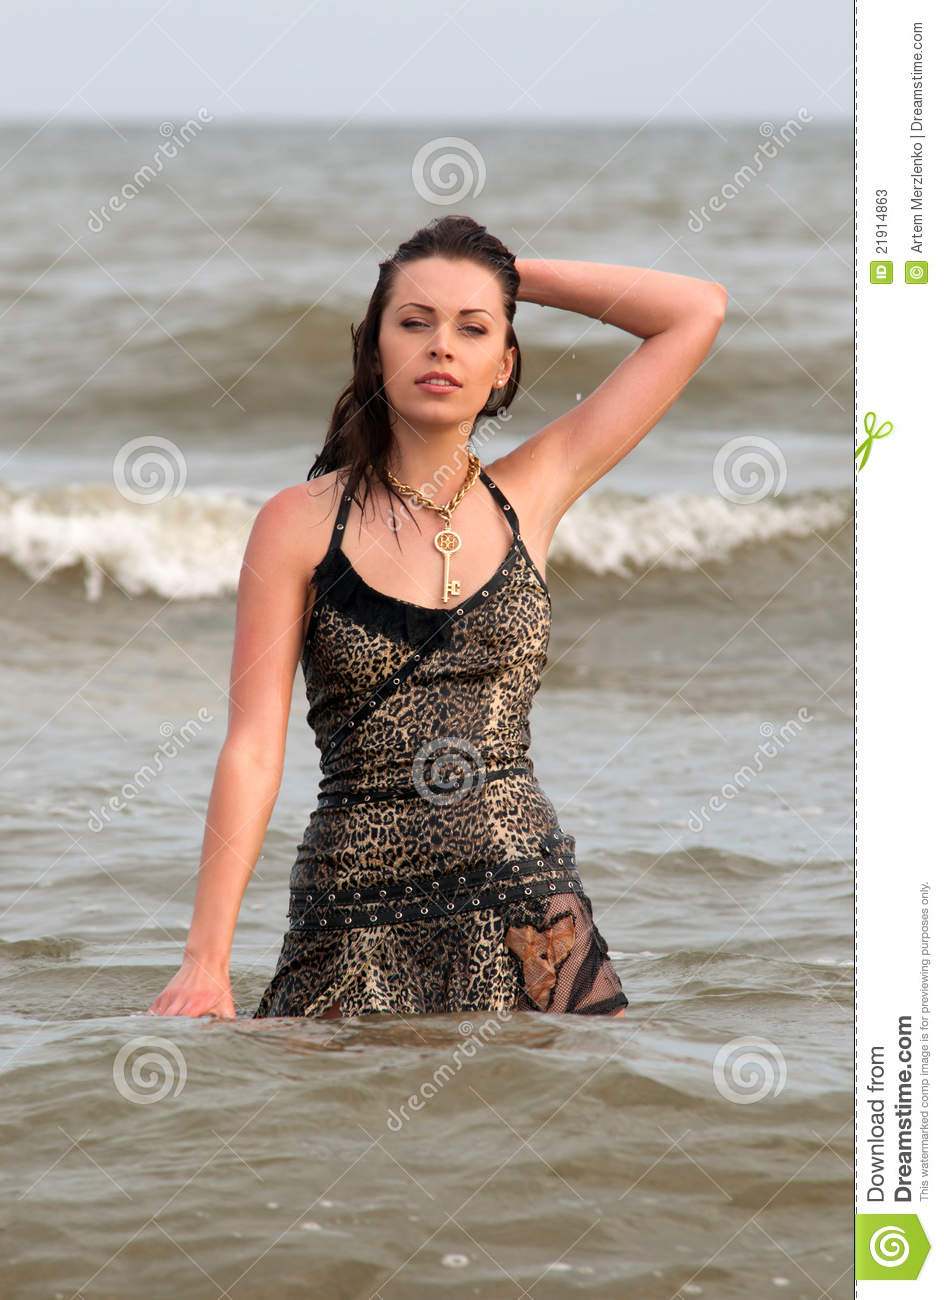 Woman In A Wet Dress Stock Photos Image 21914863